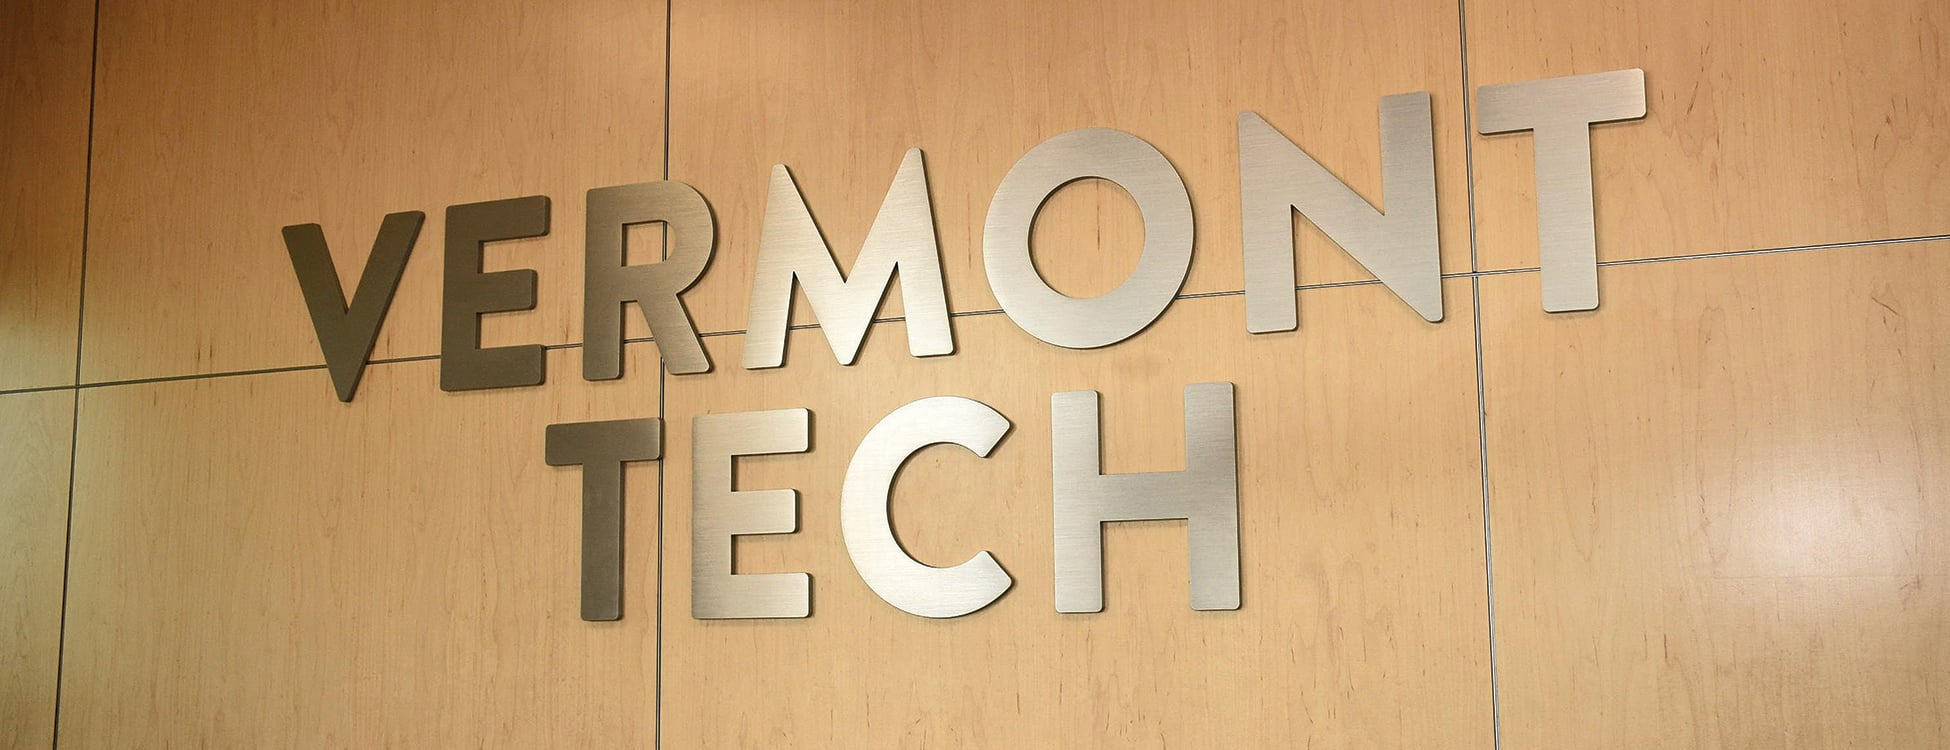 Vermont Tech Logo, wood, metal